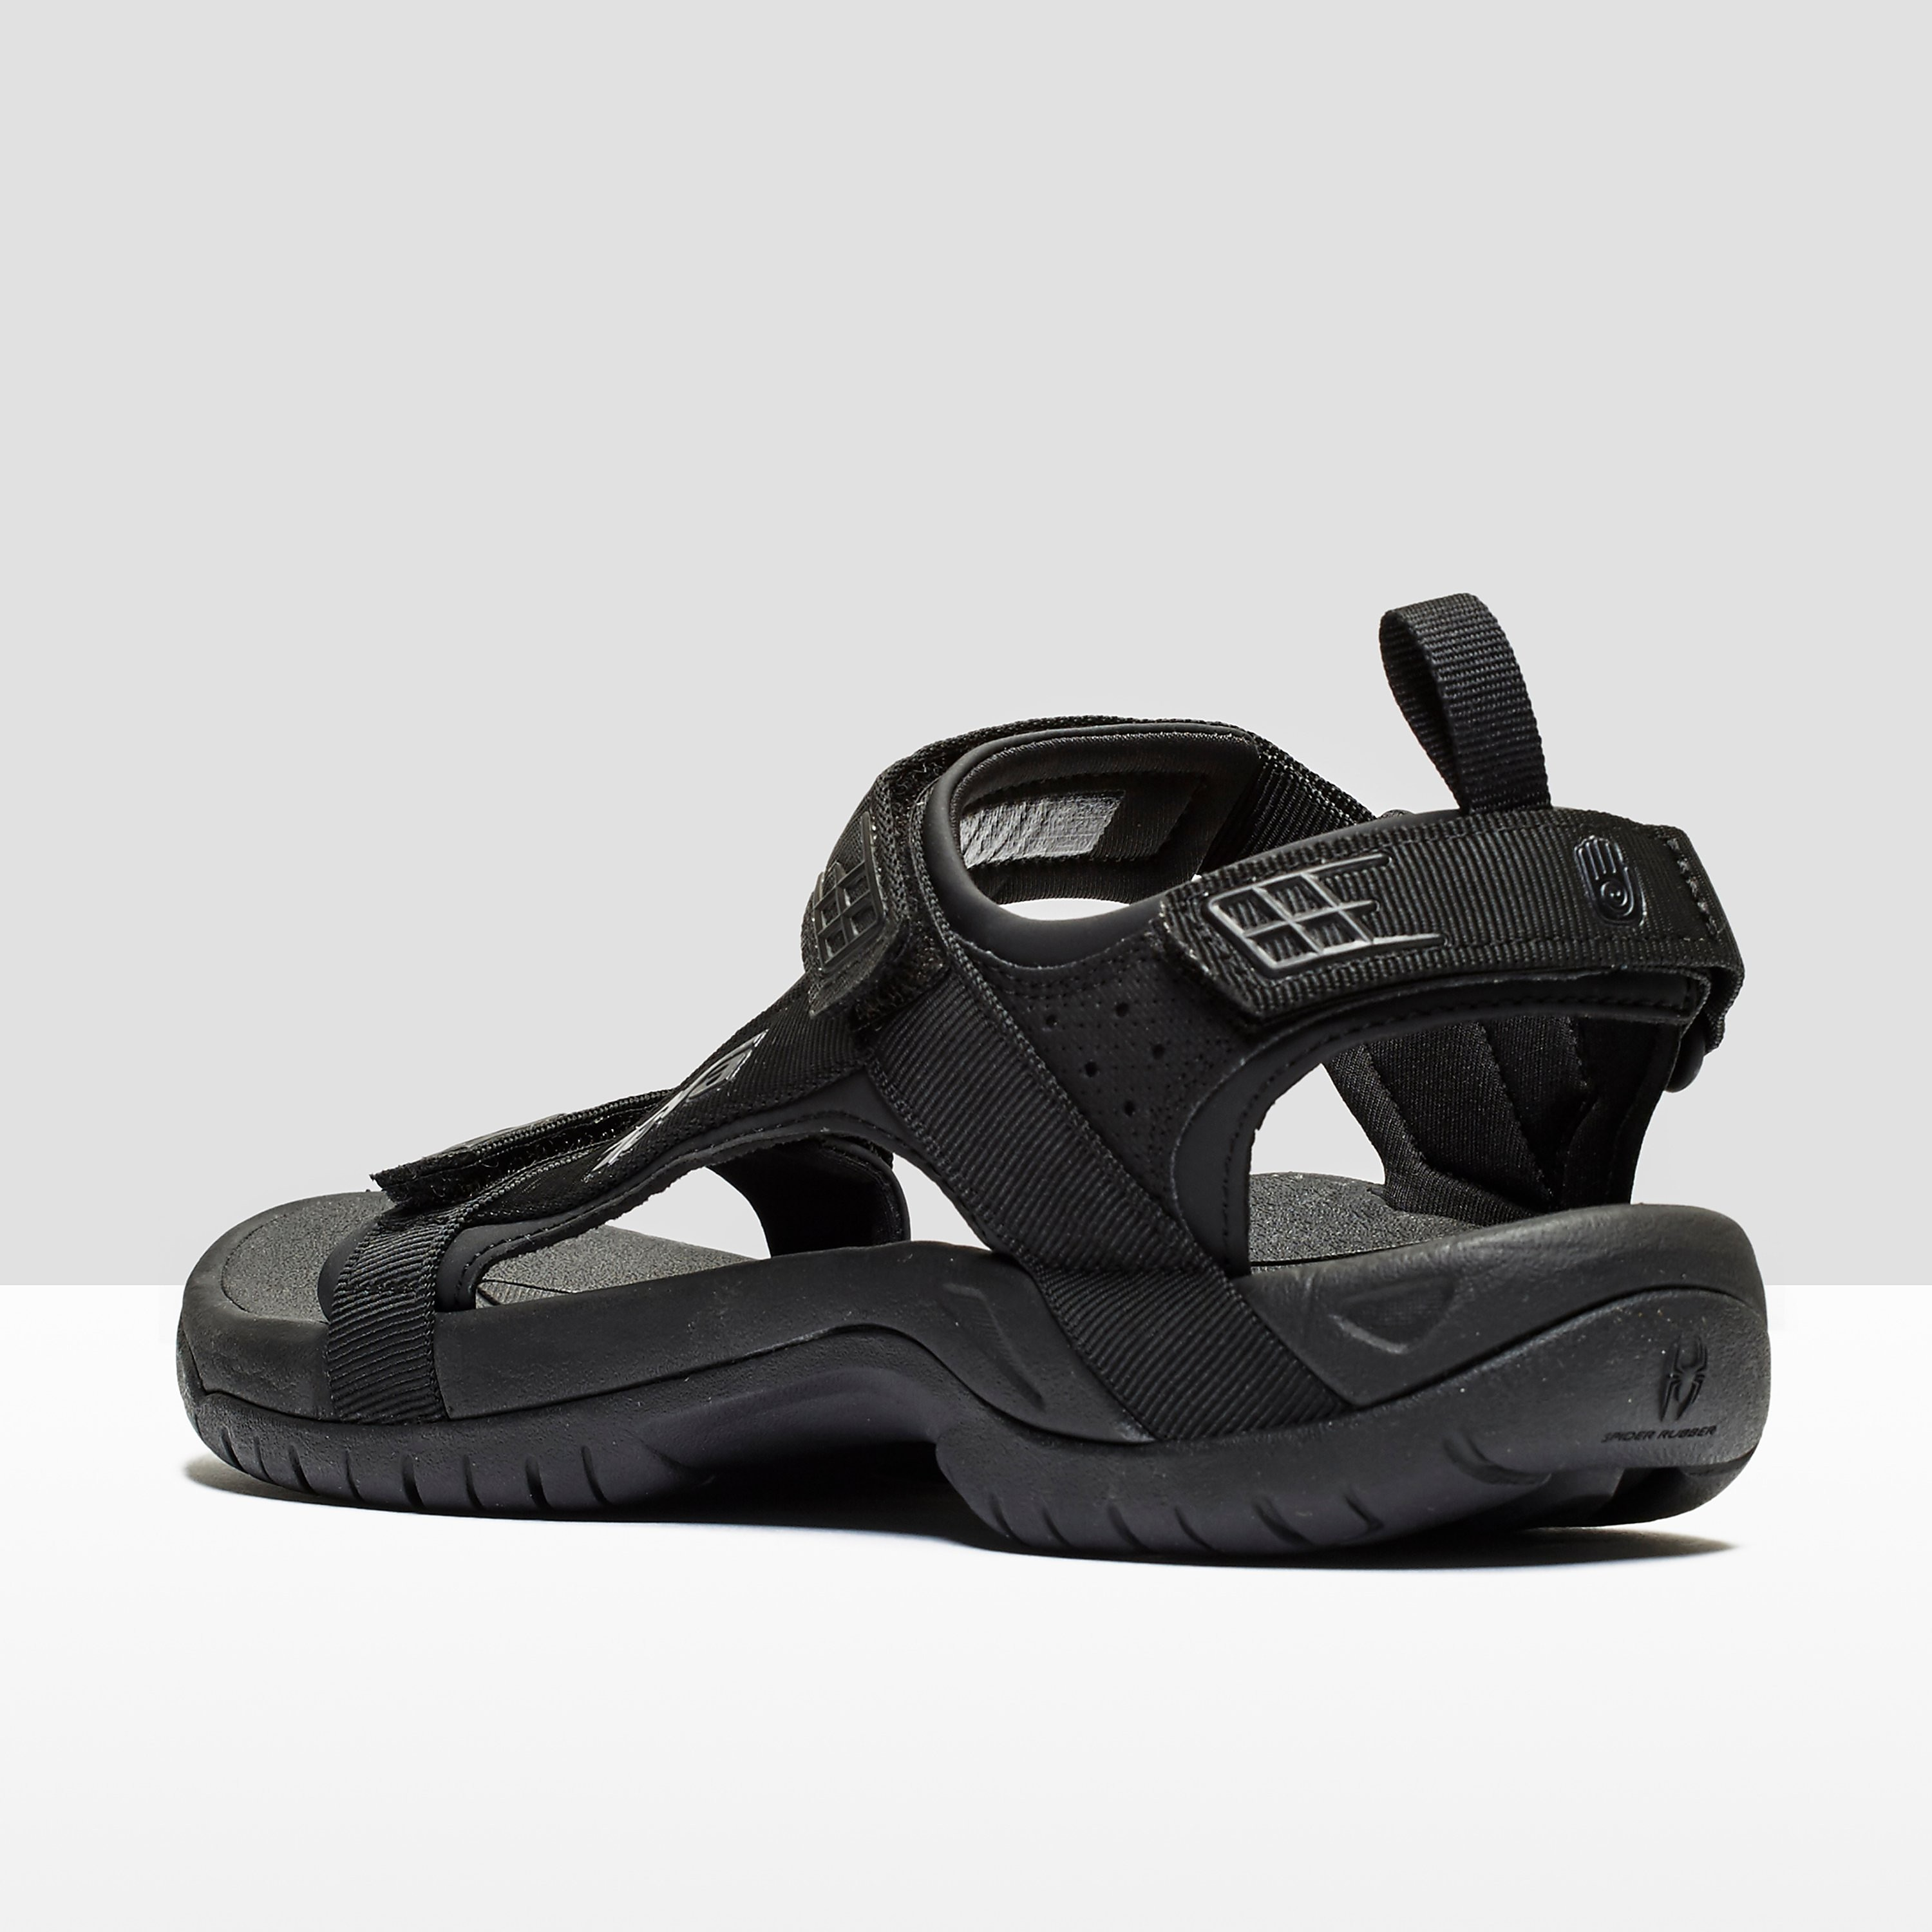 Teva Tanza Men's Sandals